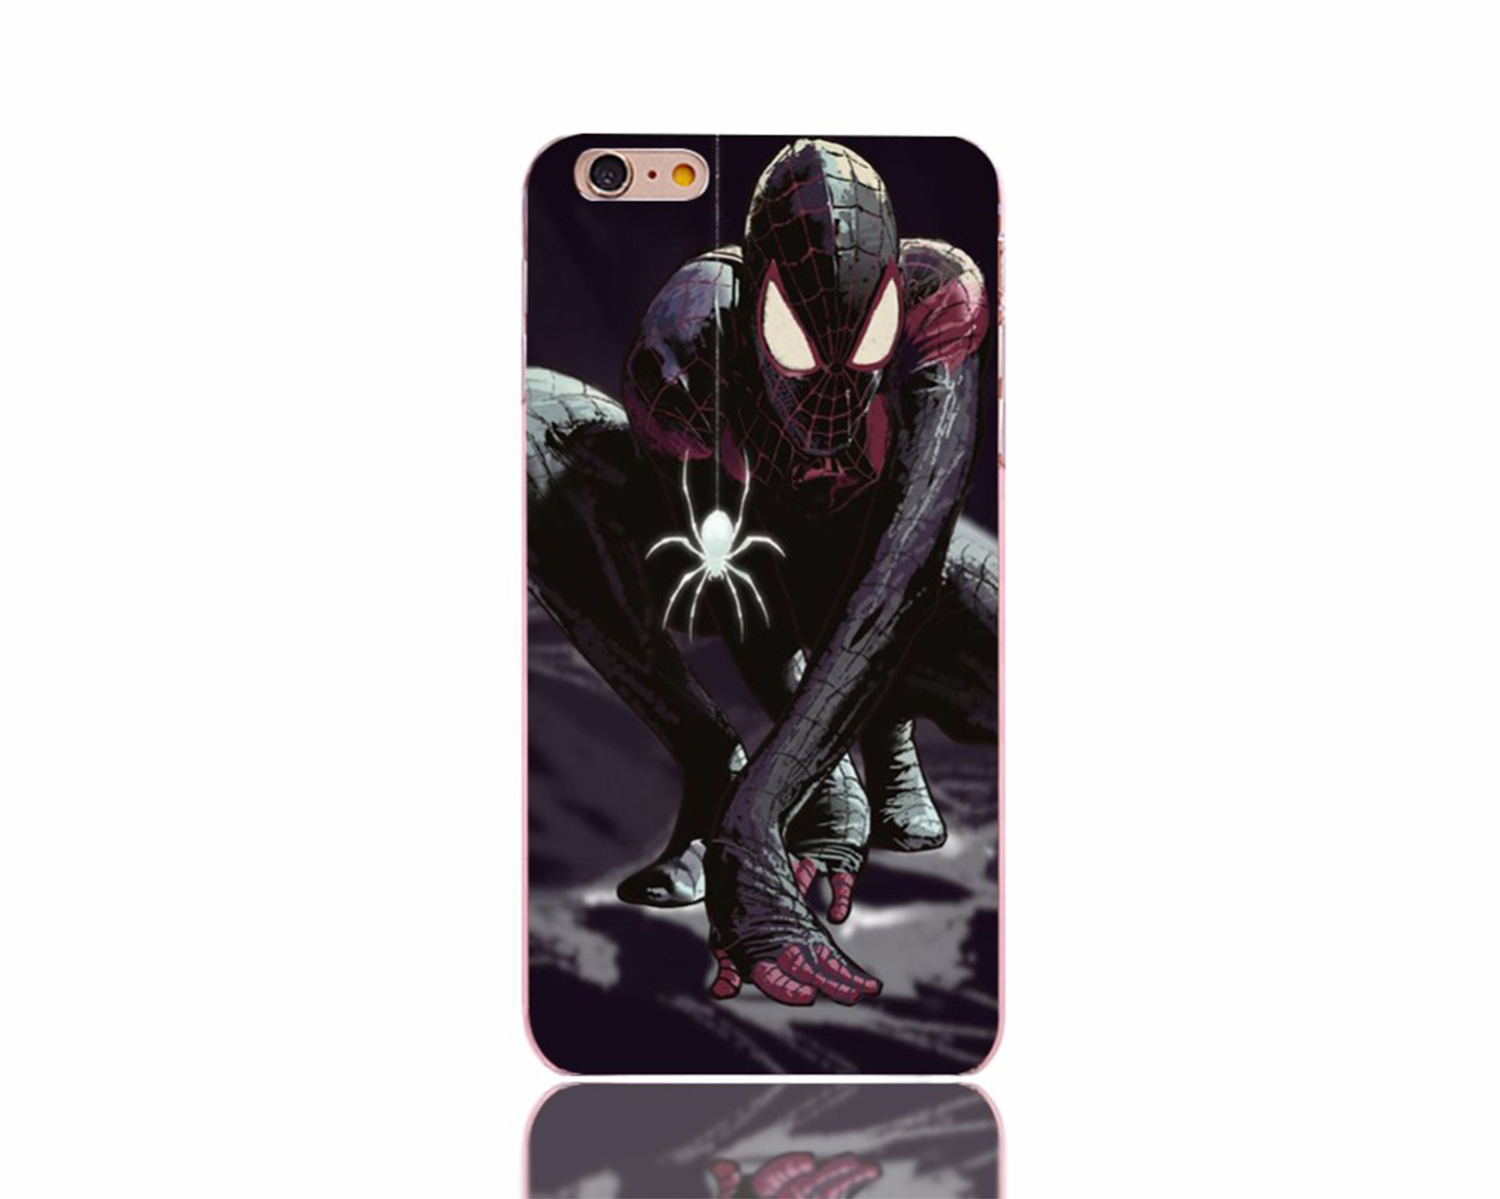 Kritzel Superheroes Collection für iPhone 6 / 6s - SHC #13